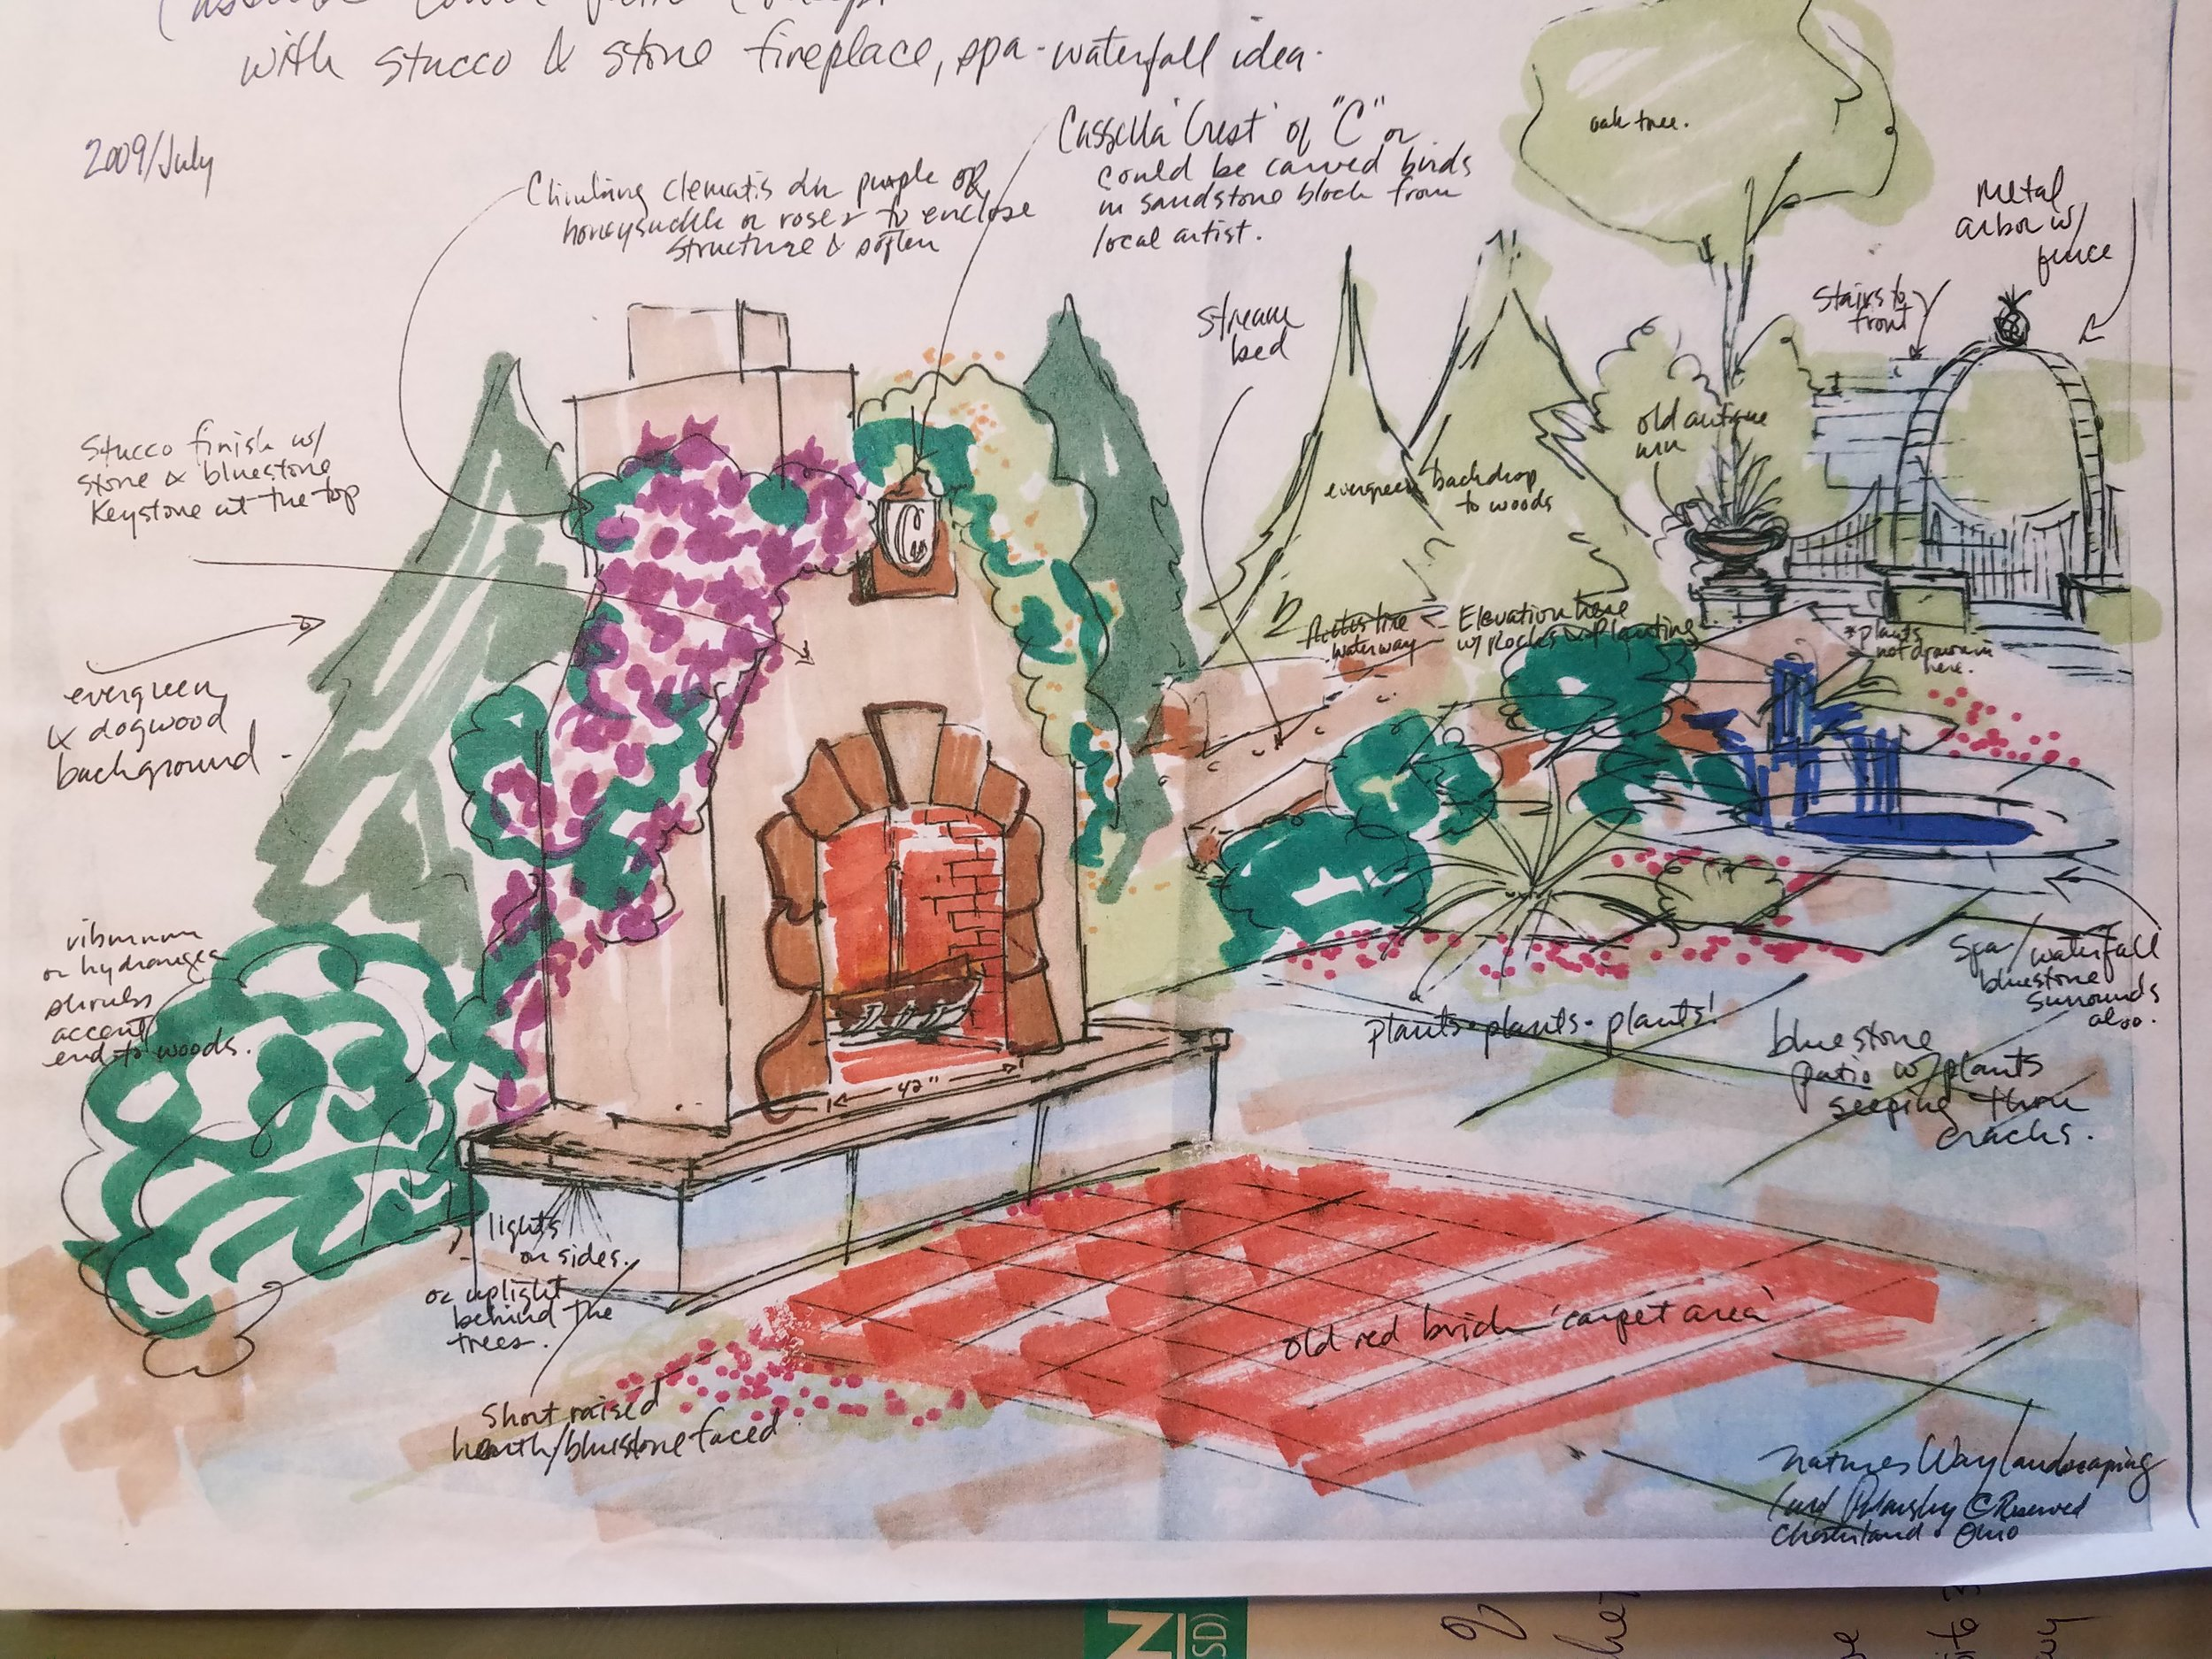 A Carol Design isabout - a special event! It is all about hardscapes and softscapes and you! This sketch of an outdoor adobe style fireplace was hand drawn specifically from details given by the client. Much research is involved to highlight natural light, the shape and contour of your property and the shape of your lifestyle! Repeated computer generated plans are never used with A Carol Design. In fact, many customers will request to keep their sketch as a meaningful reminder of the transformation right before their eyes! Design dreams really do come true!Vertical and Container Gardens for small spaces. Large designs for the ambitious!!!Floral Arrangements for any occasion!Staging for your property or special event is our pleasure!